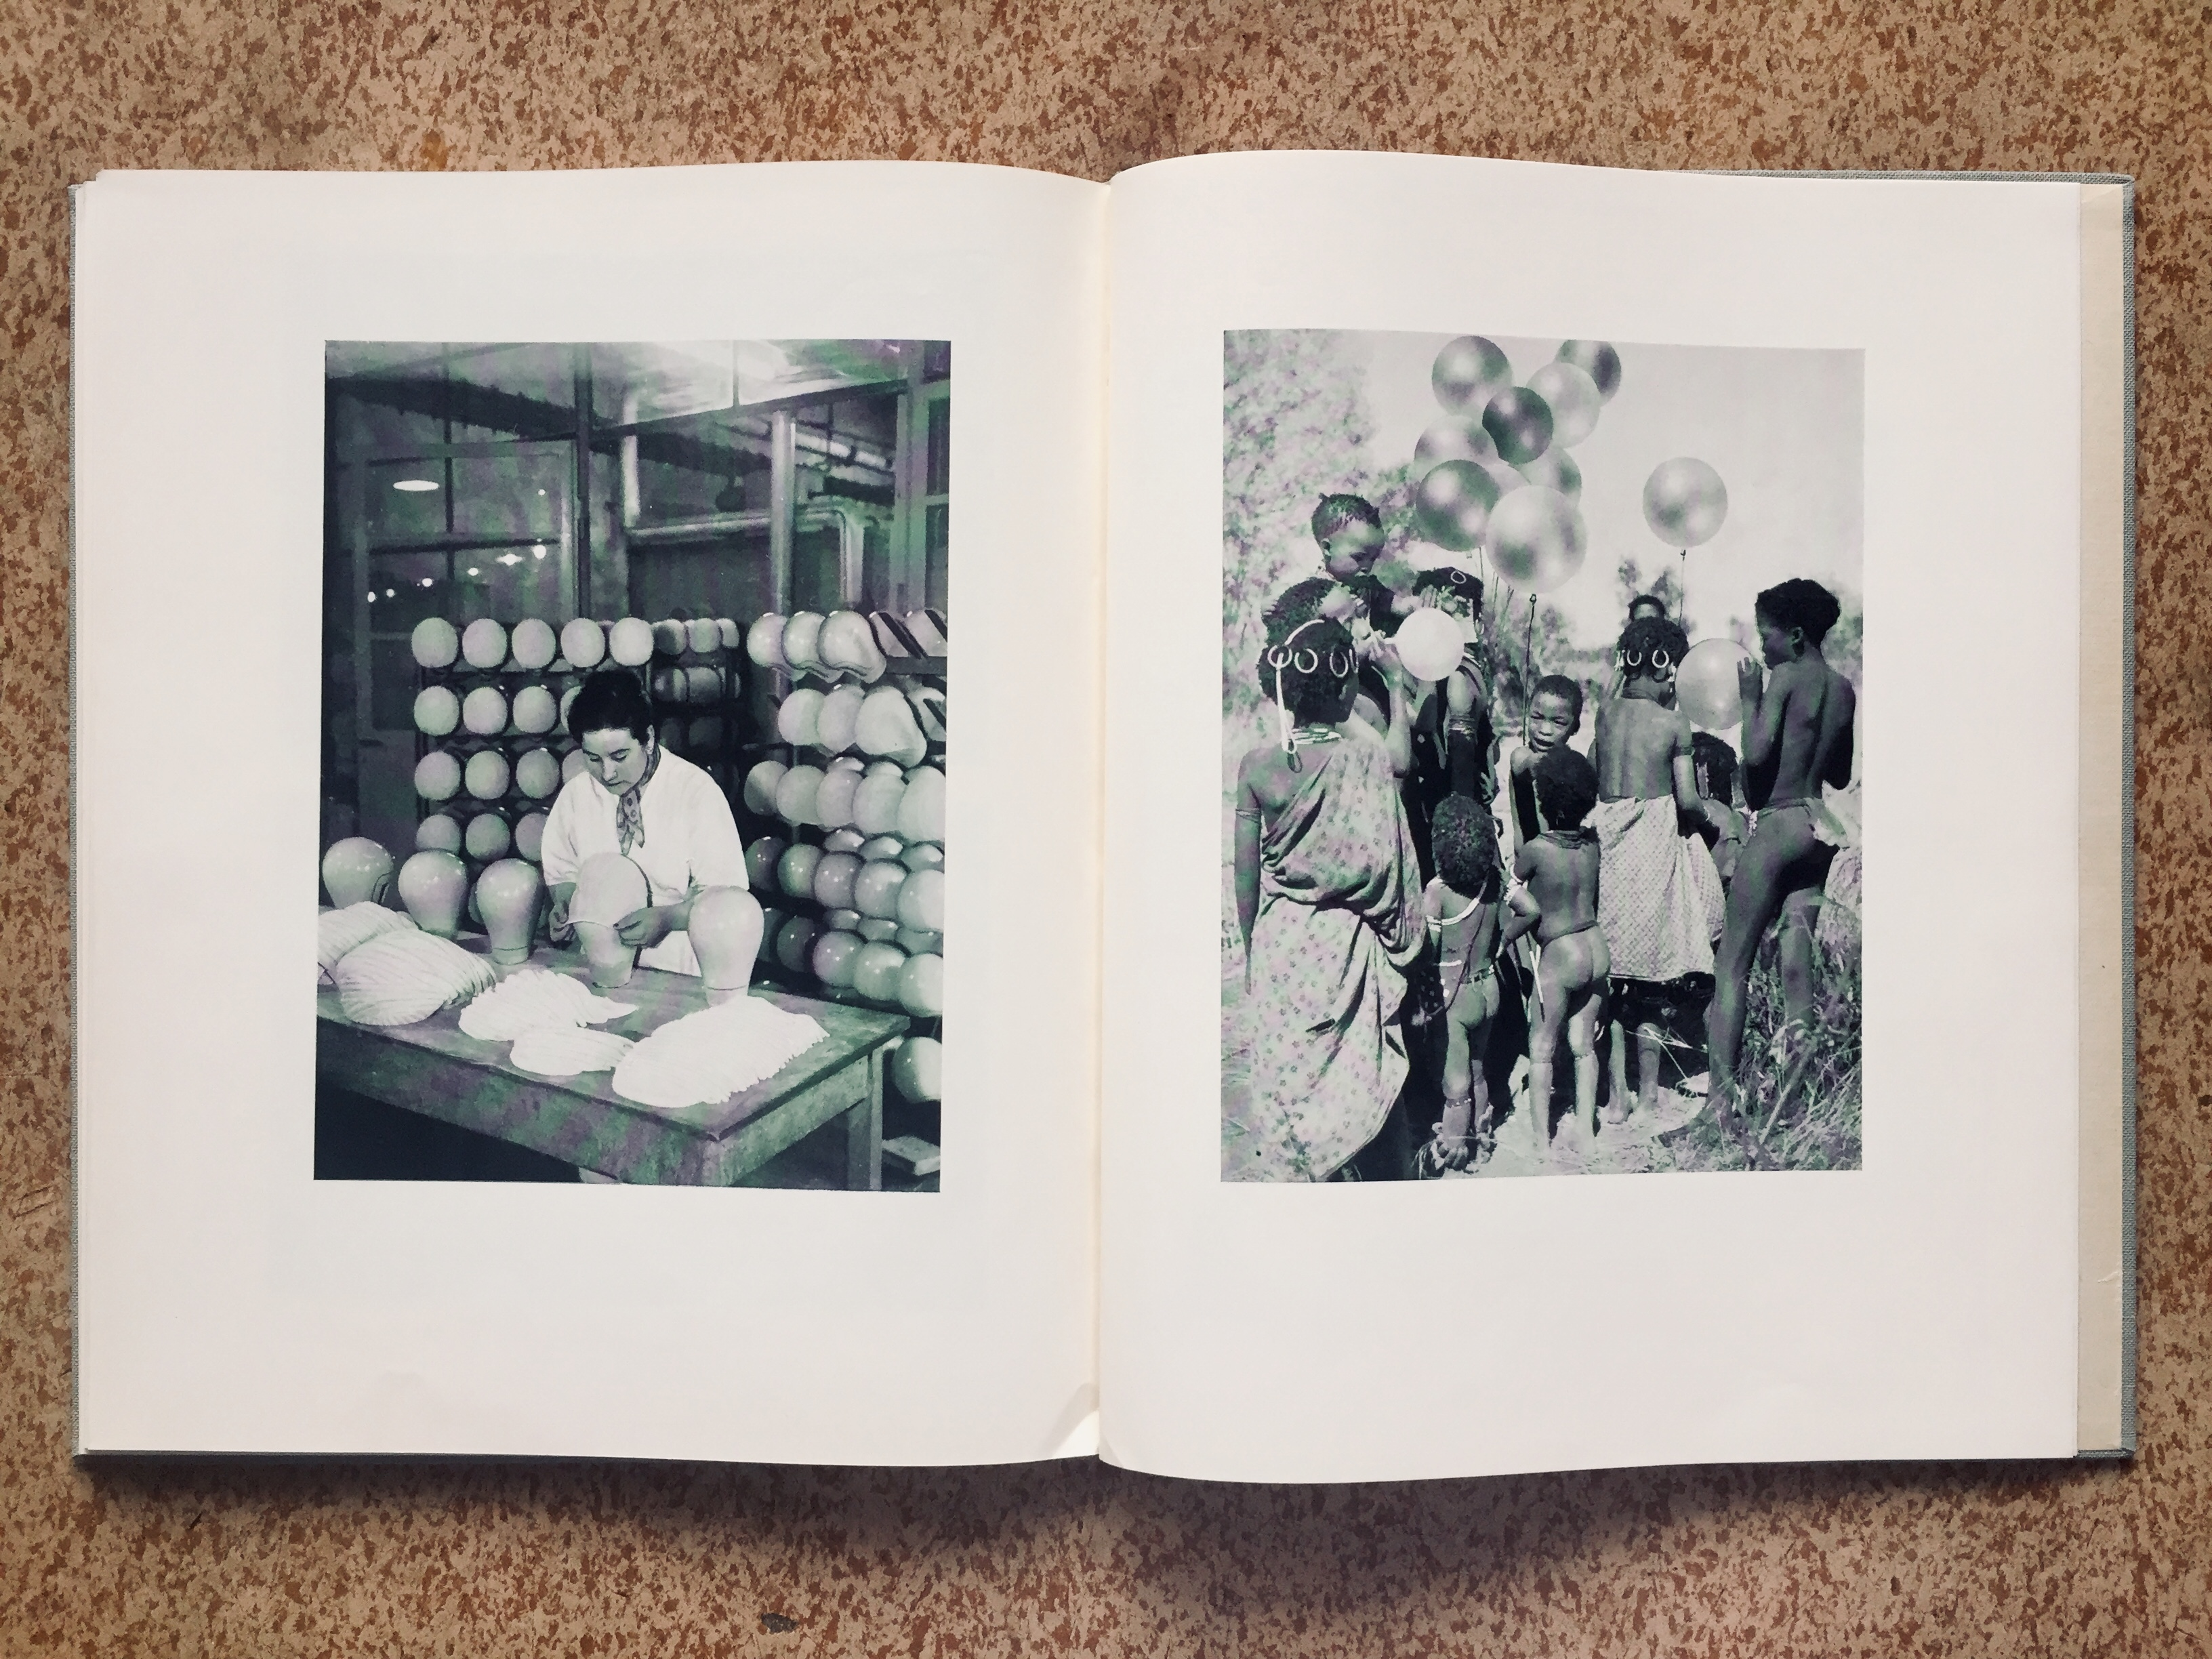 Festschrift fotos of woman worker moulding bath caps and children with balloons, 1957